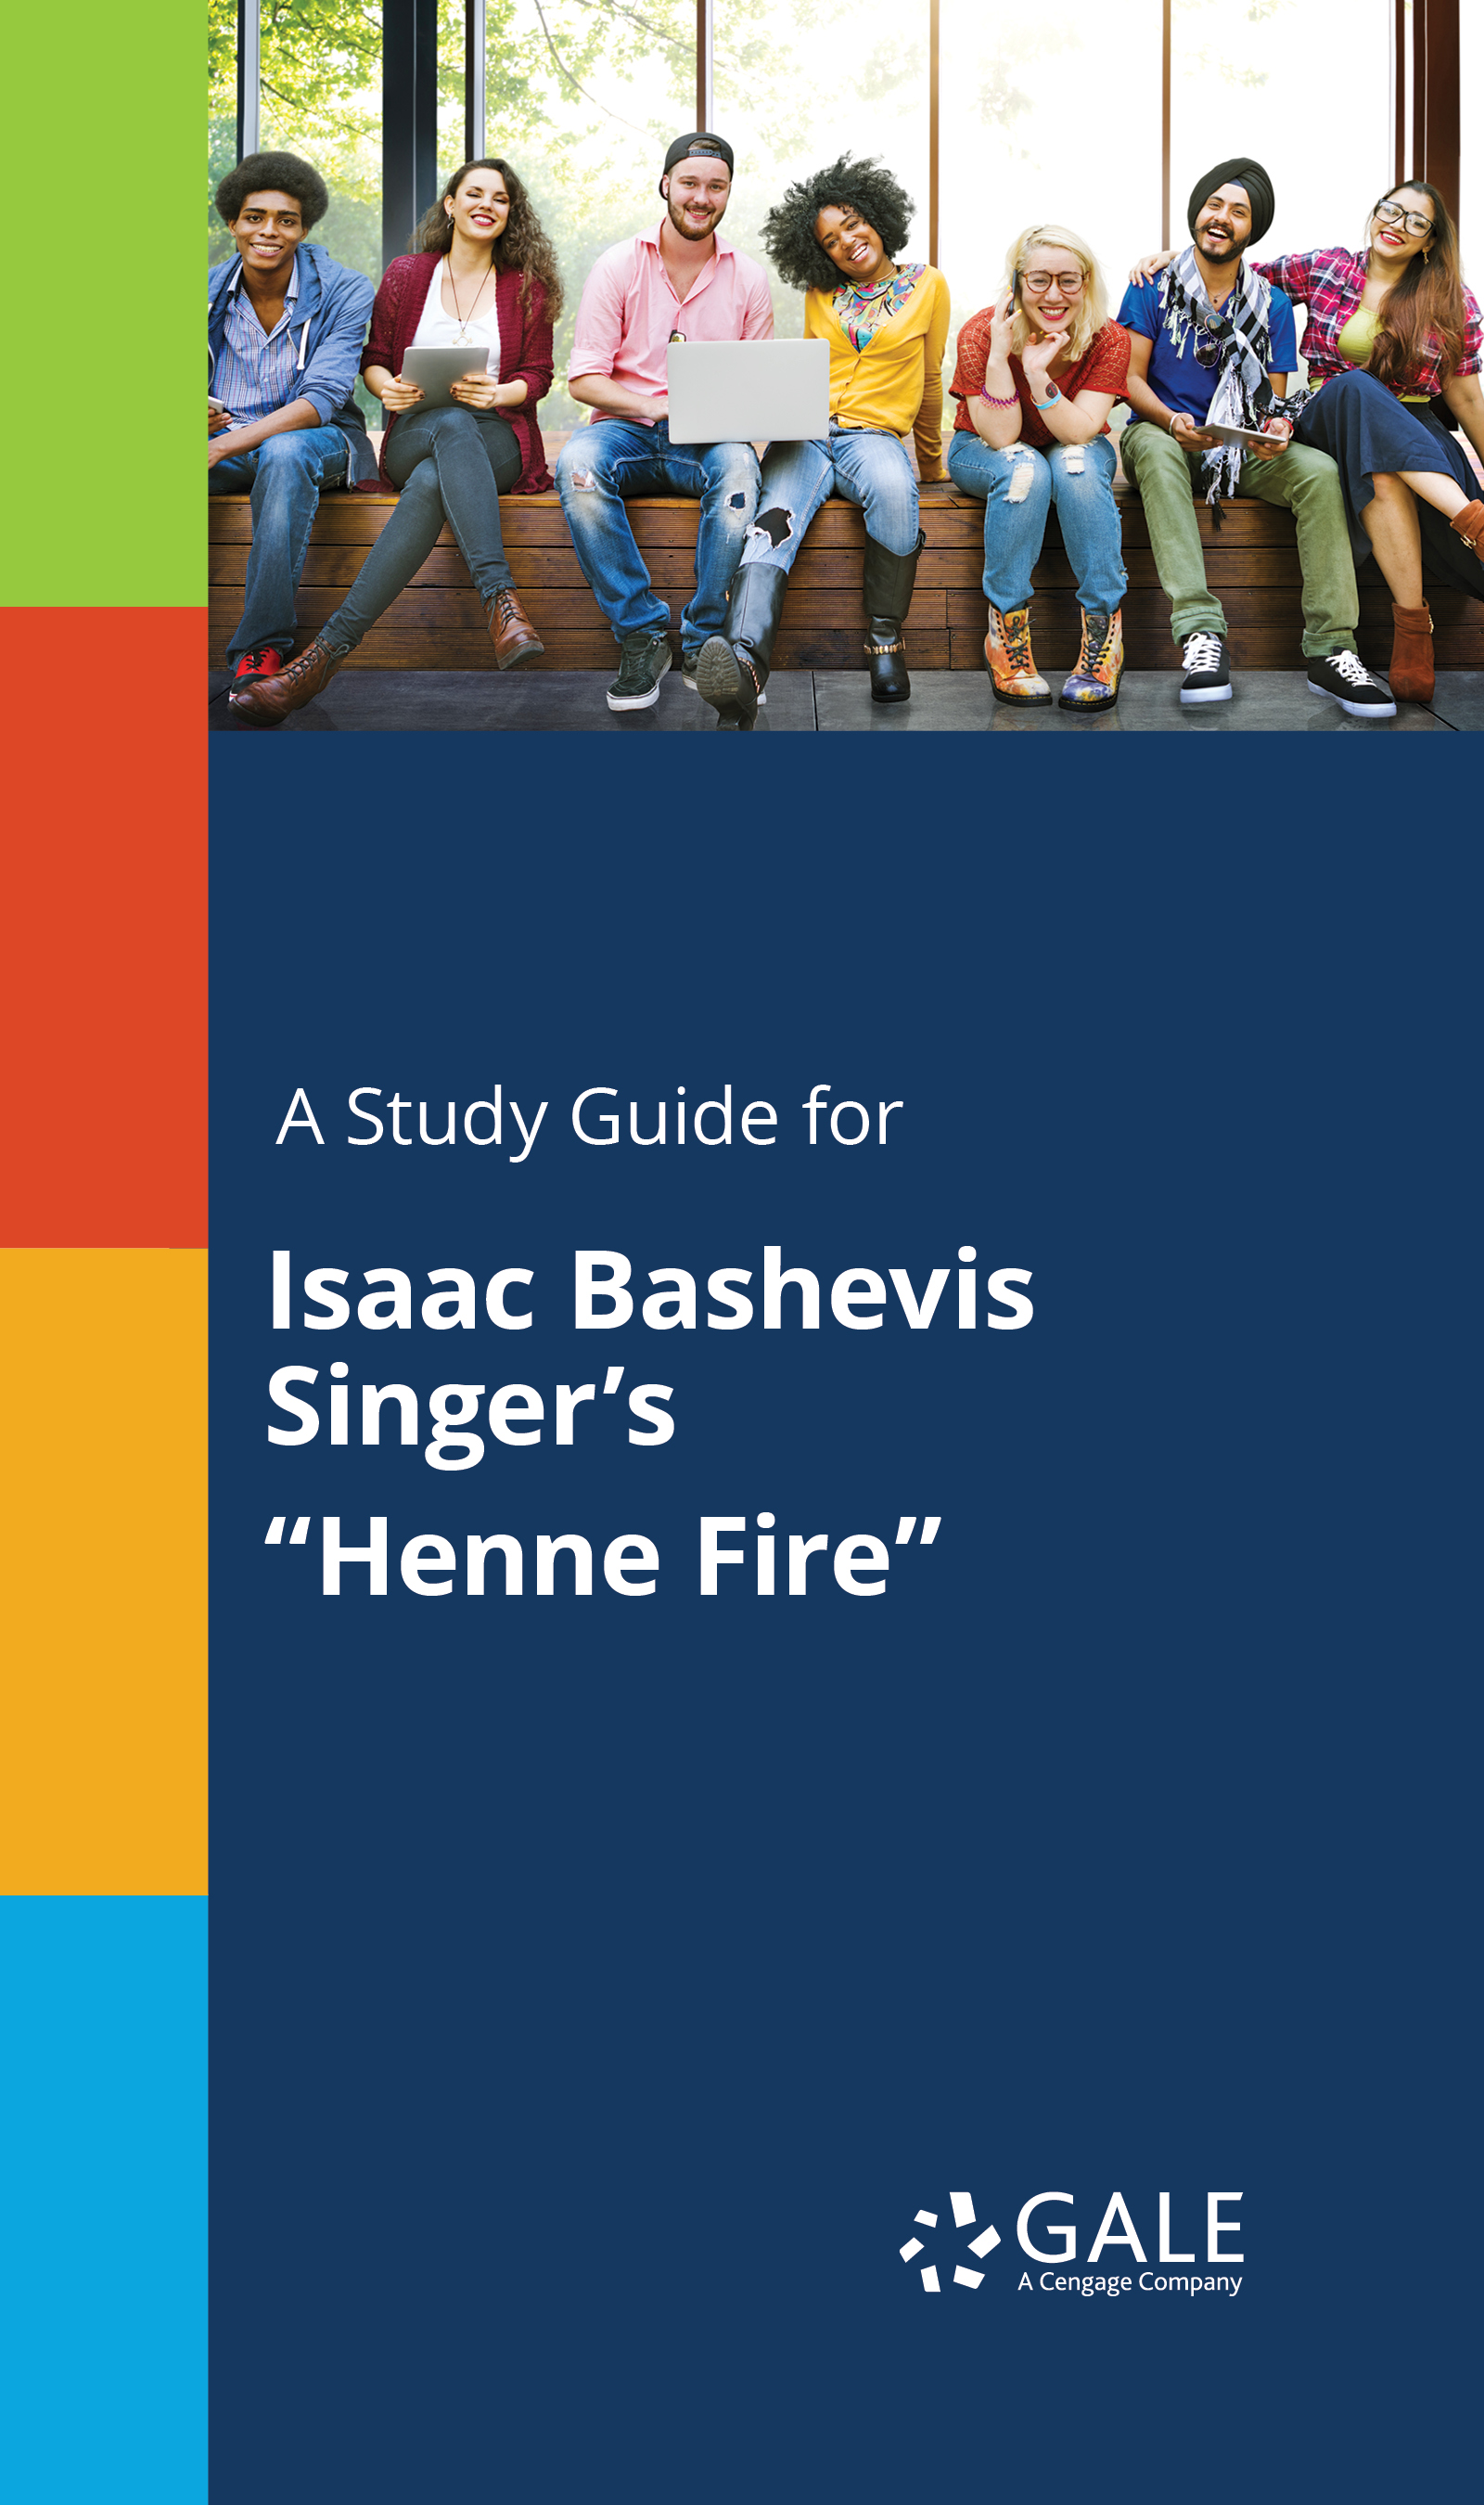 "A Study Guide for Isaac Bashevis Singer's ""Henne Fire"